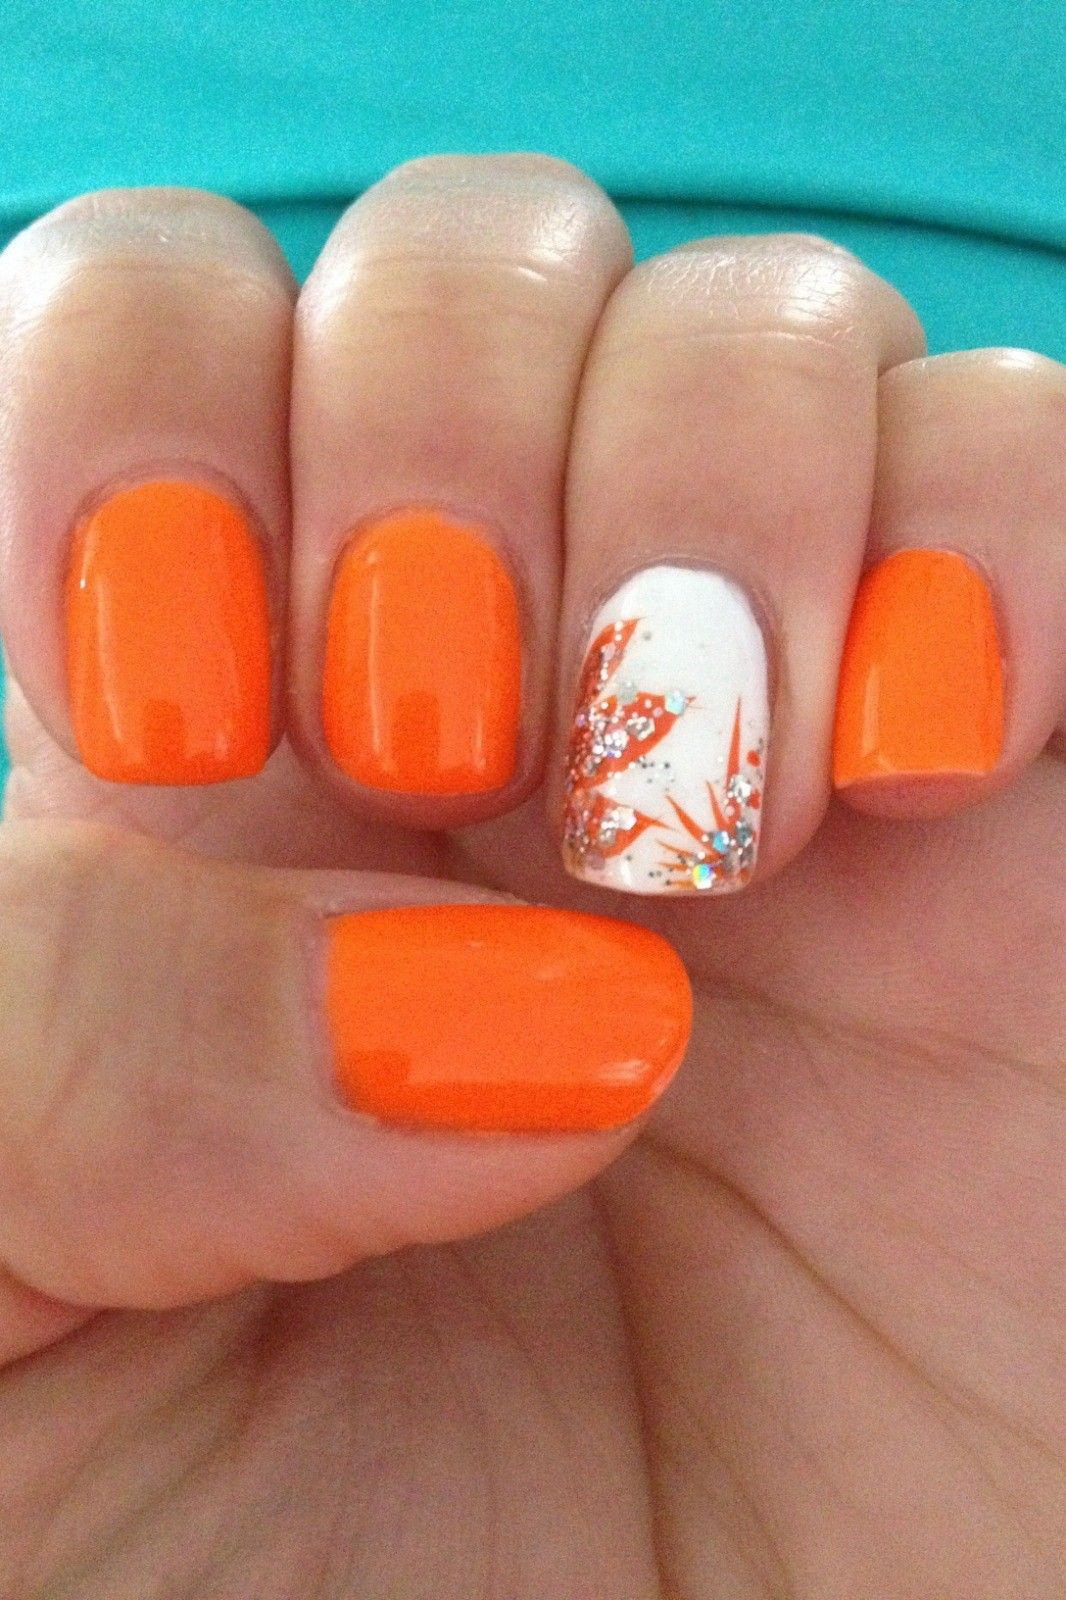 10 Nail Colors That Are On Trend For Spring 2020 In 2020 Orange Nails Fall Nail Colors Nail Colors